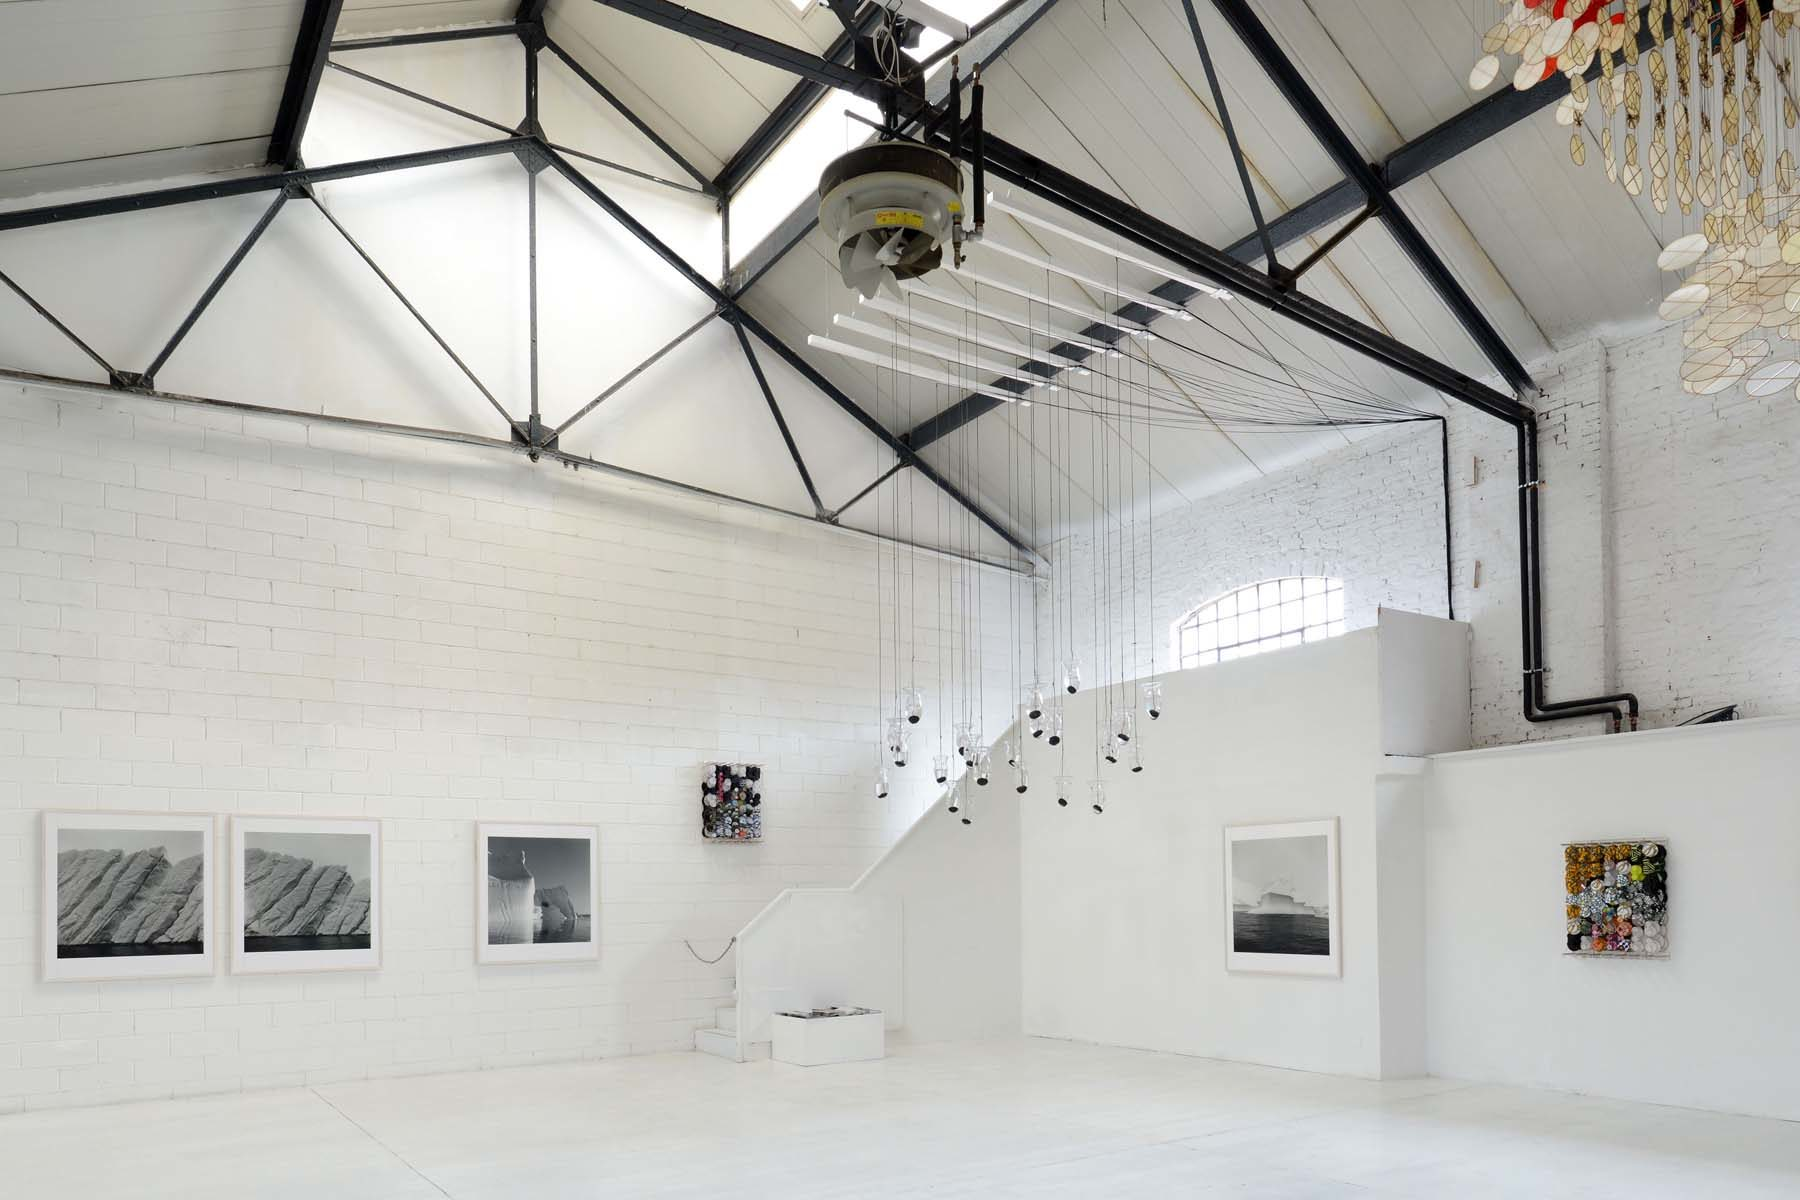 Recursions and Mutations, installation view, GAD, Venice, courtesy of Studio la Città, Verona, ph. M. A. Sereni